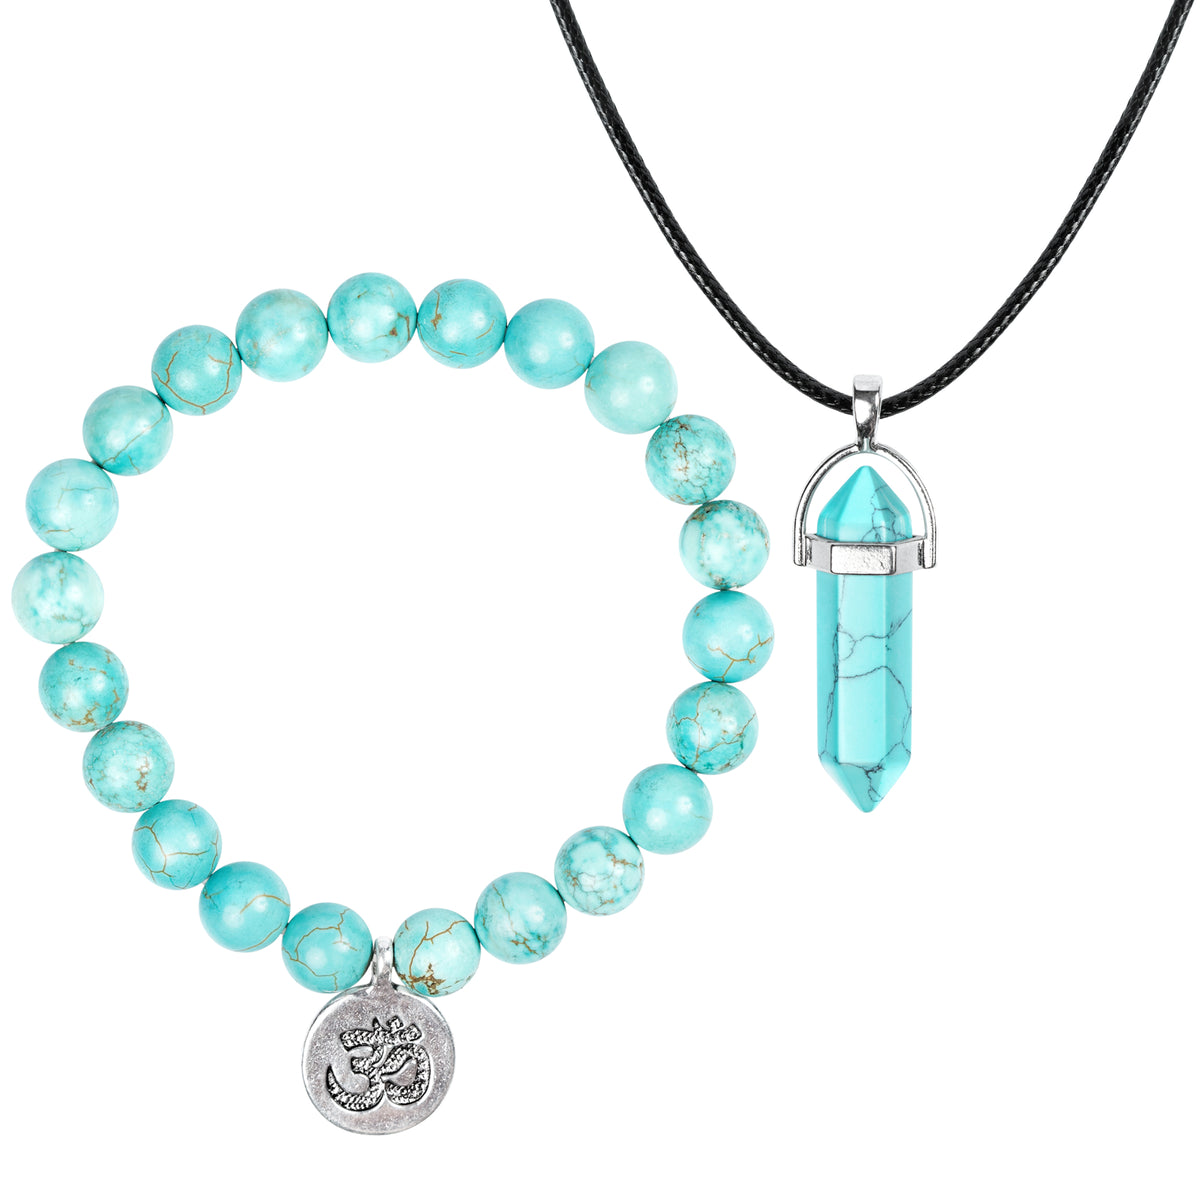 Blue Turquoise Bracelet + Necklace Set